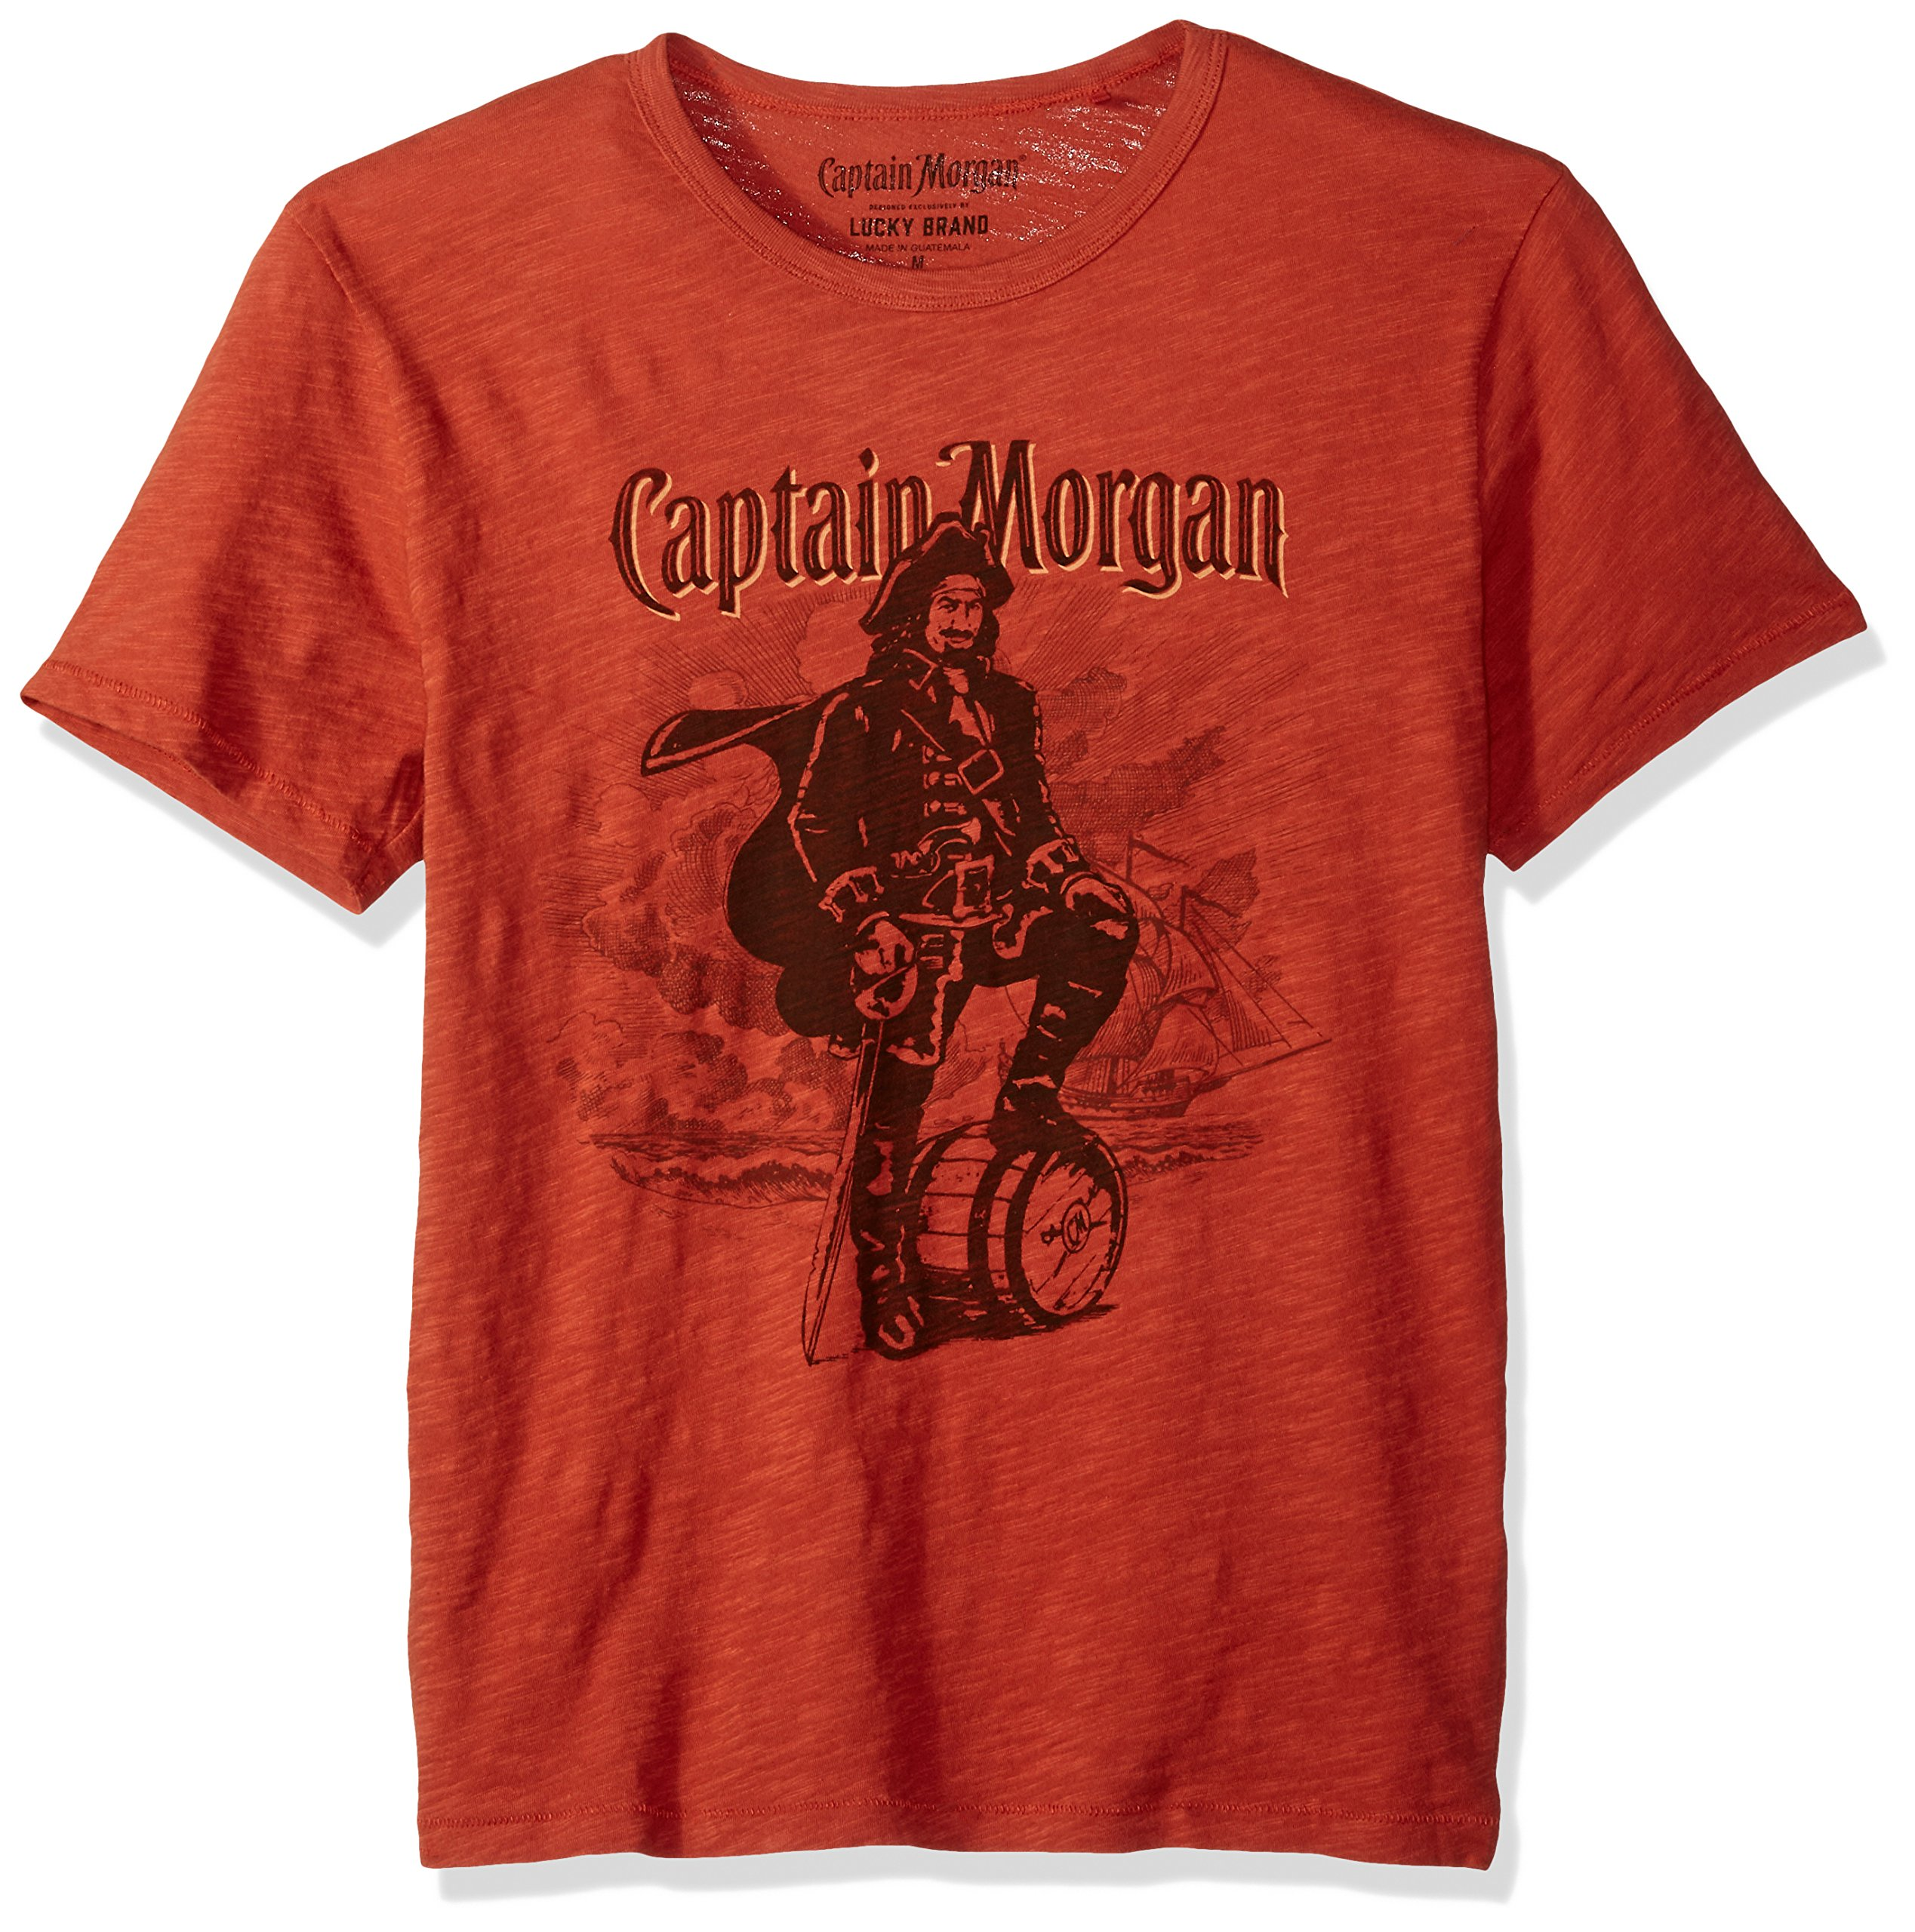 Lucky Brand Men's Captain Morgan Graphic Tee, Barn Red, L